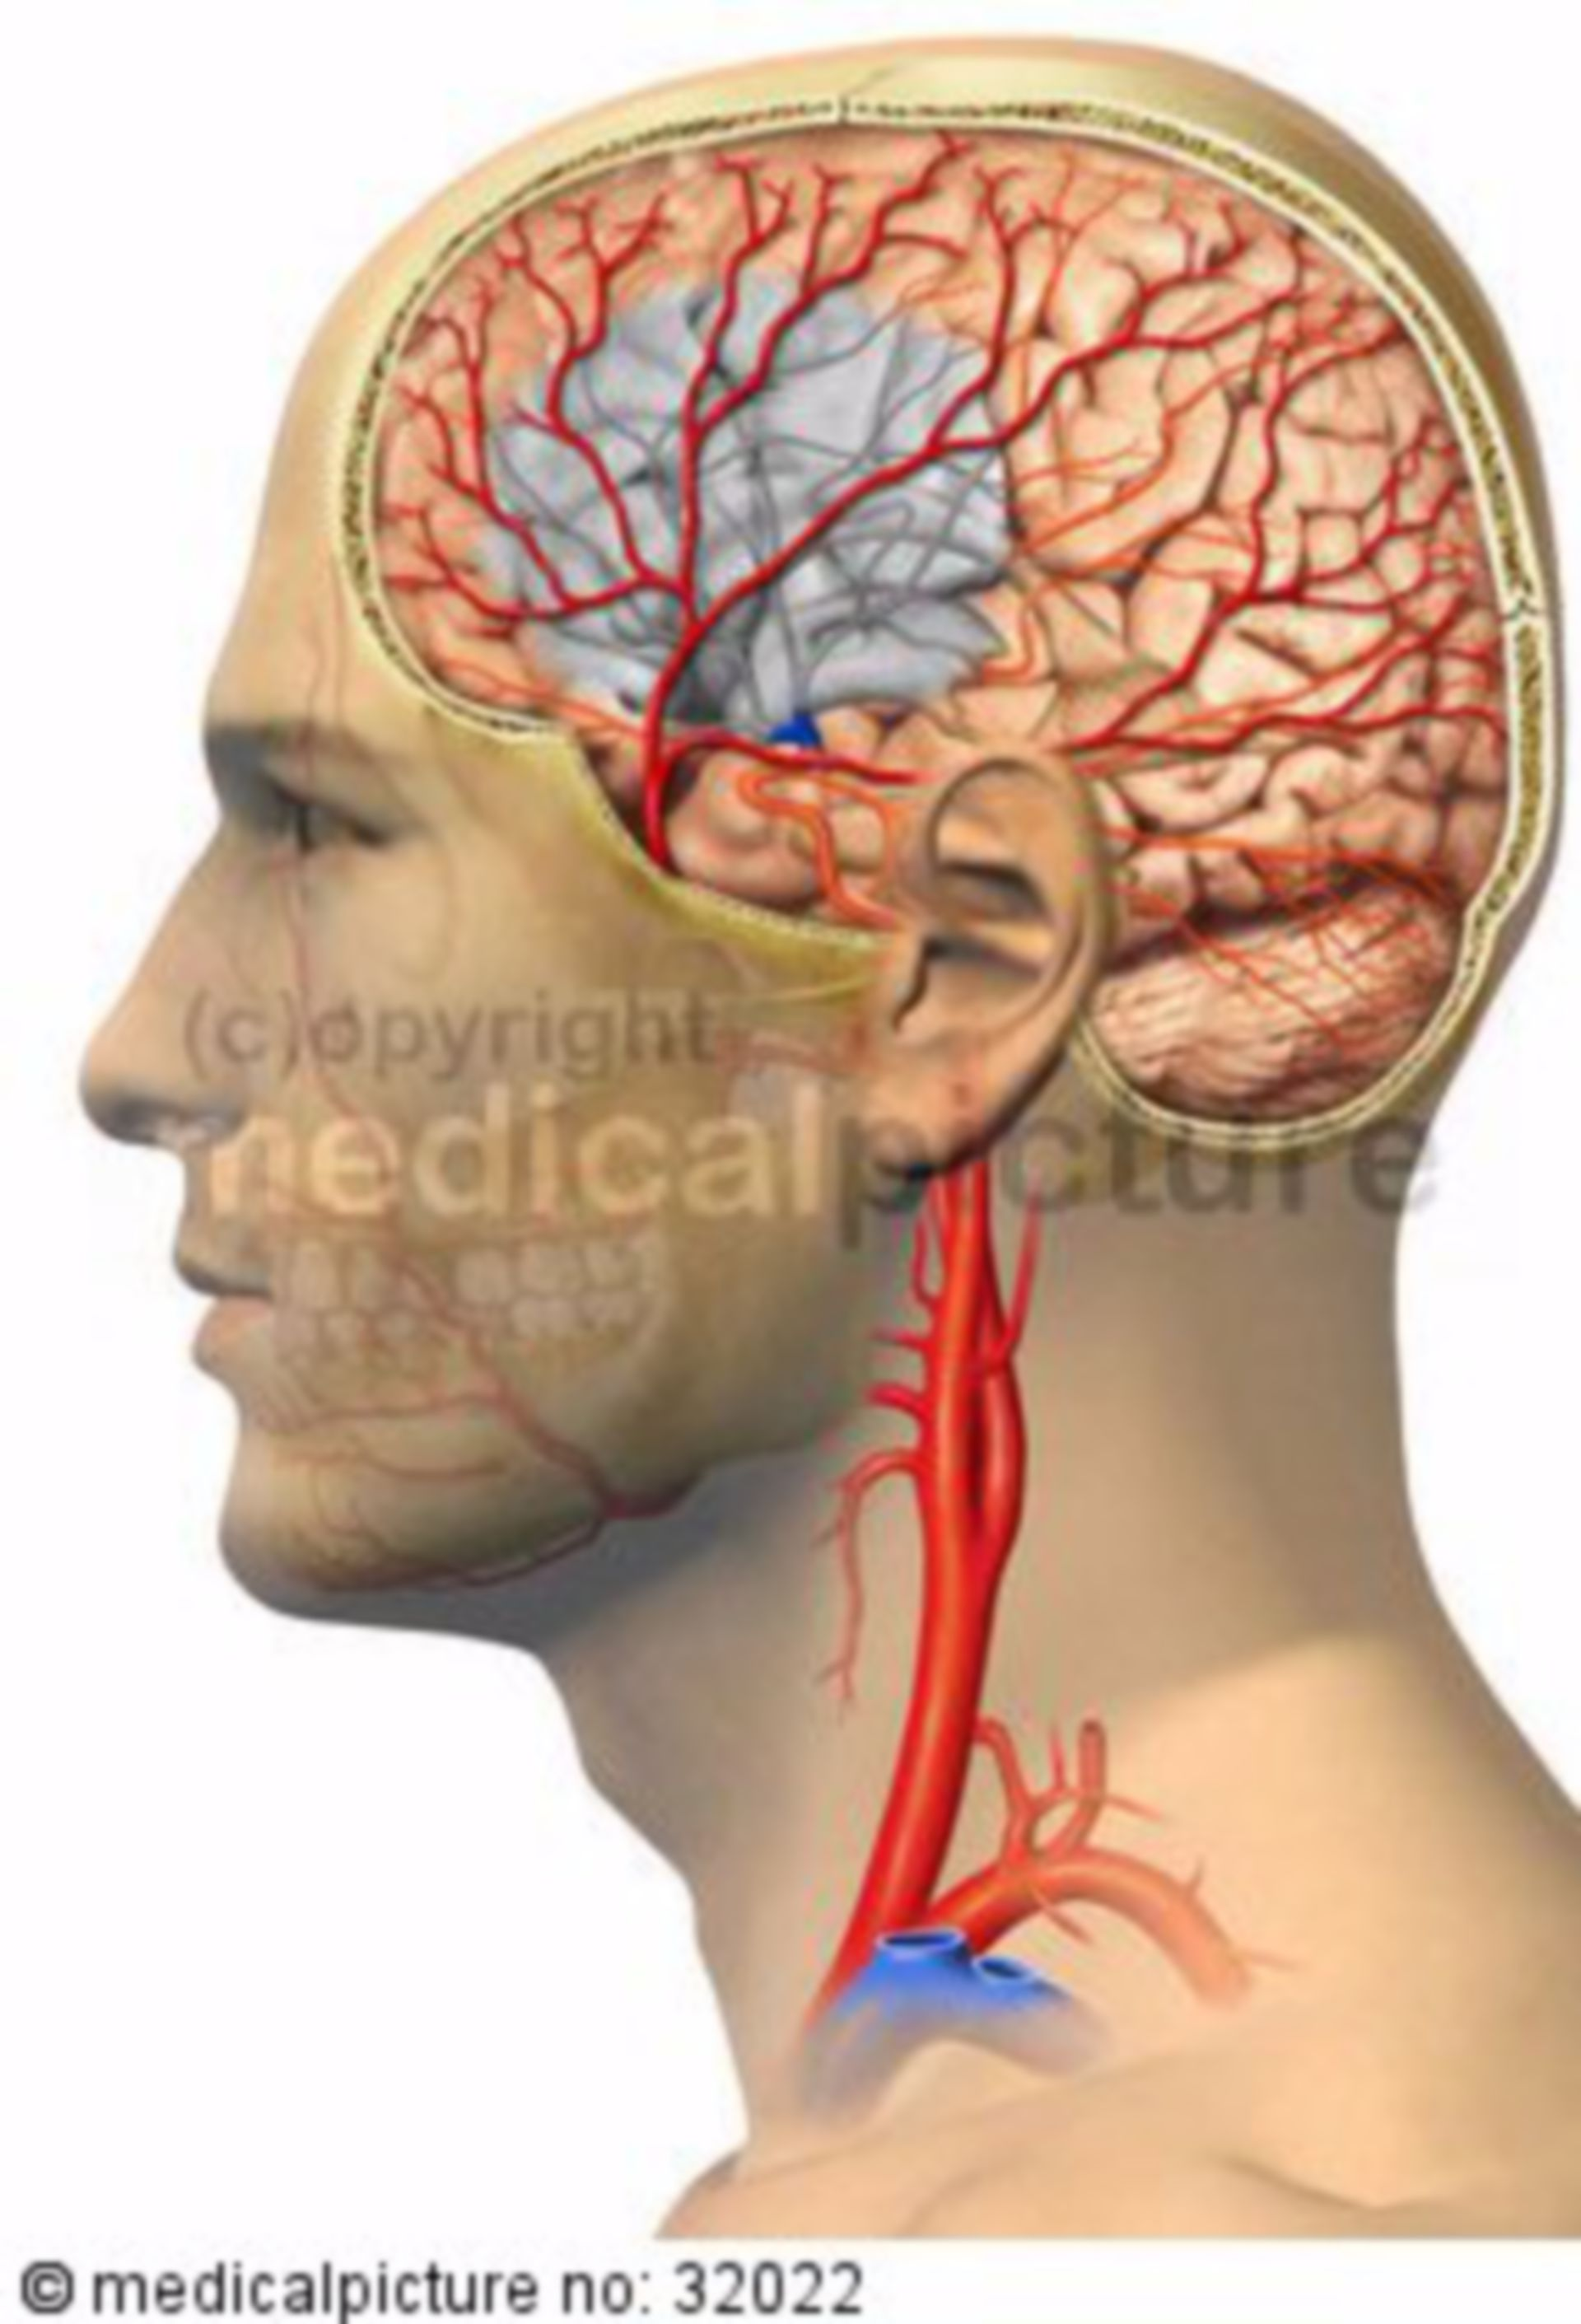 Stroke caused by Embolism